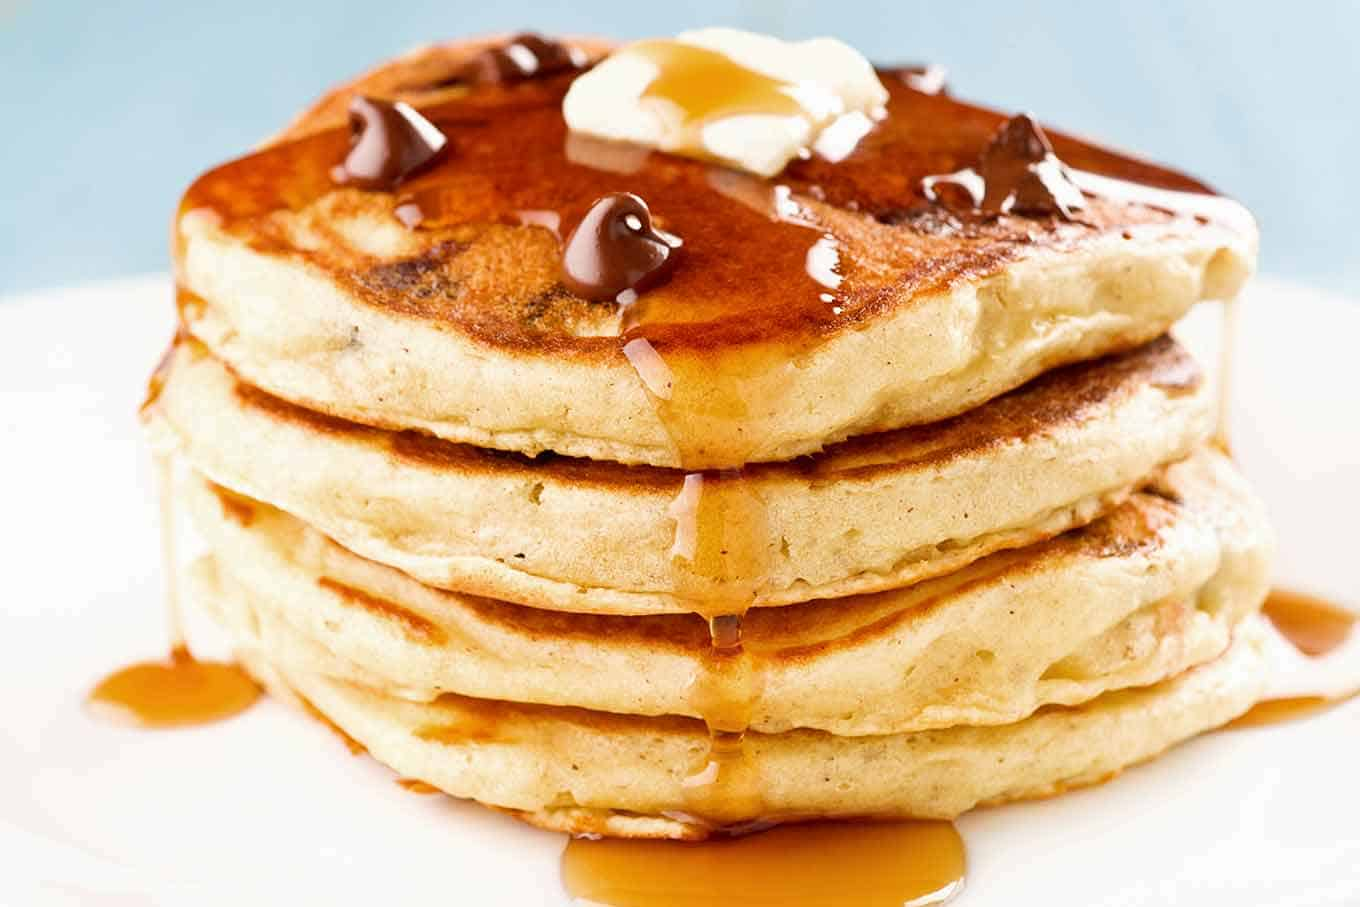 A serving of chocolate chip pancakes on a plate topped with a pat of butter and a drizzle of syrup.